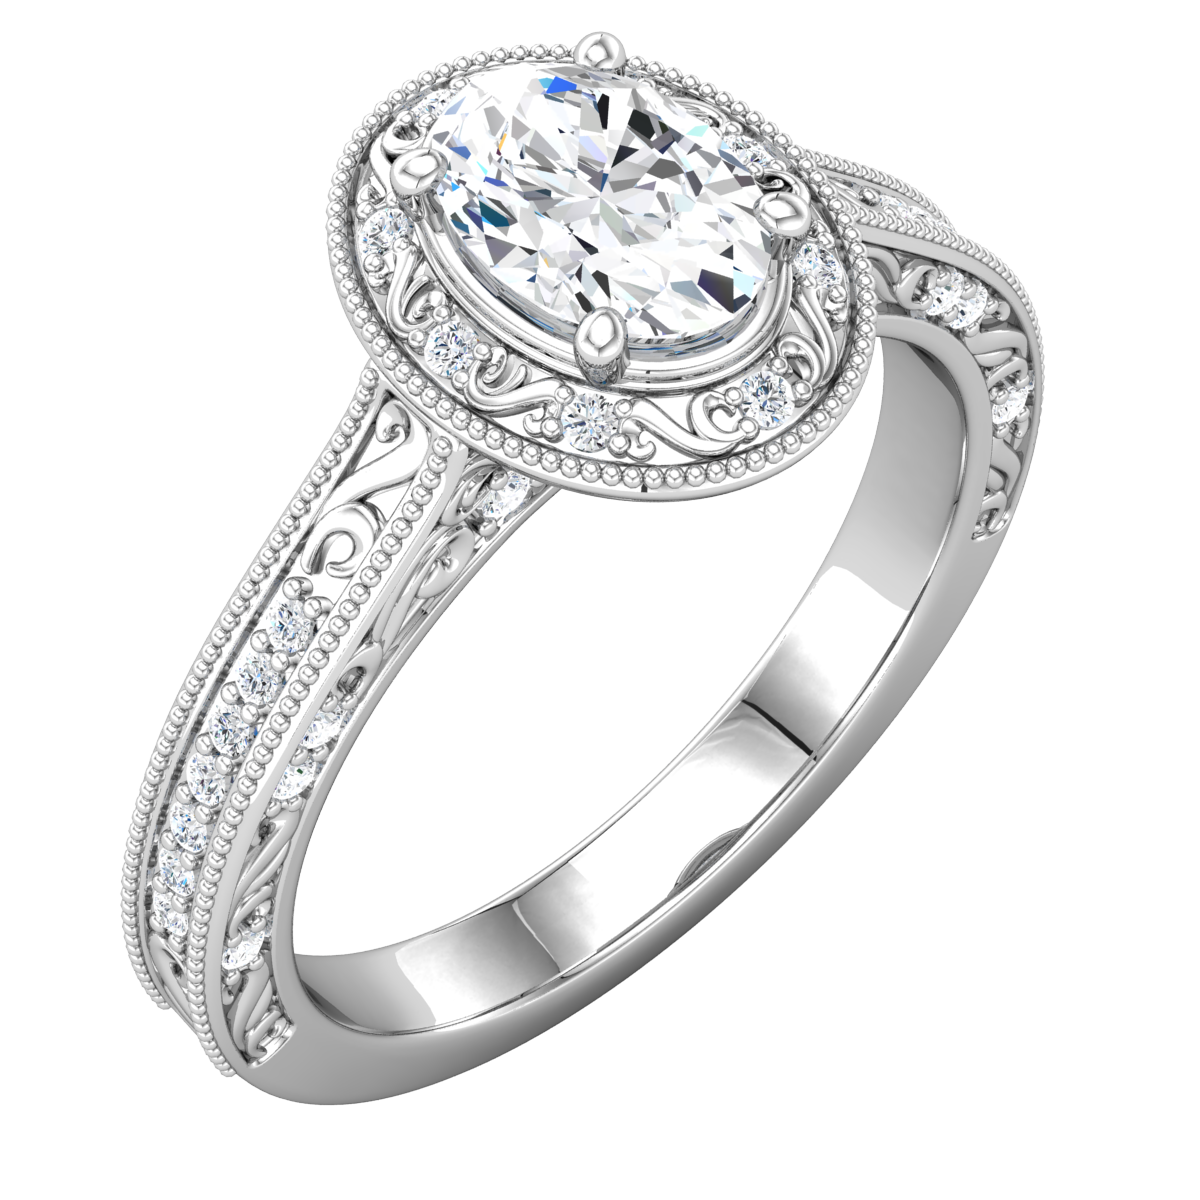 Gorgeous vintage style engagement ring by stuller wedding